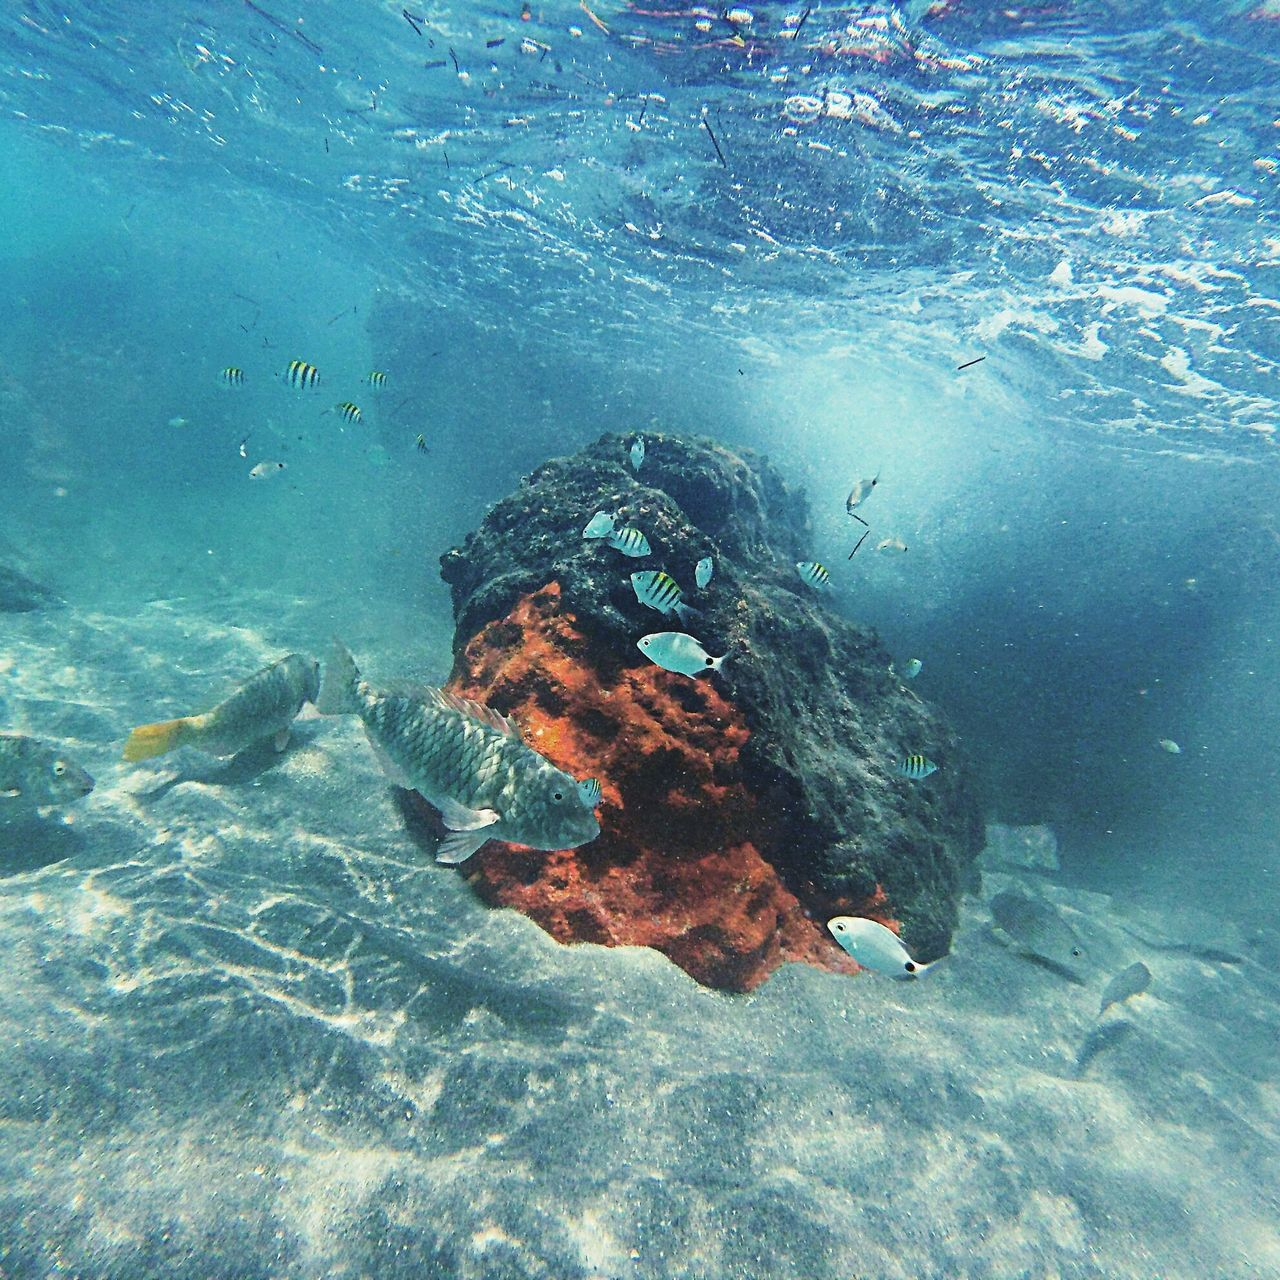 underwater, real people, undersea, water, sea, nature, one person, day, outdoors, people